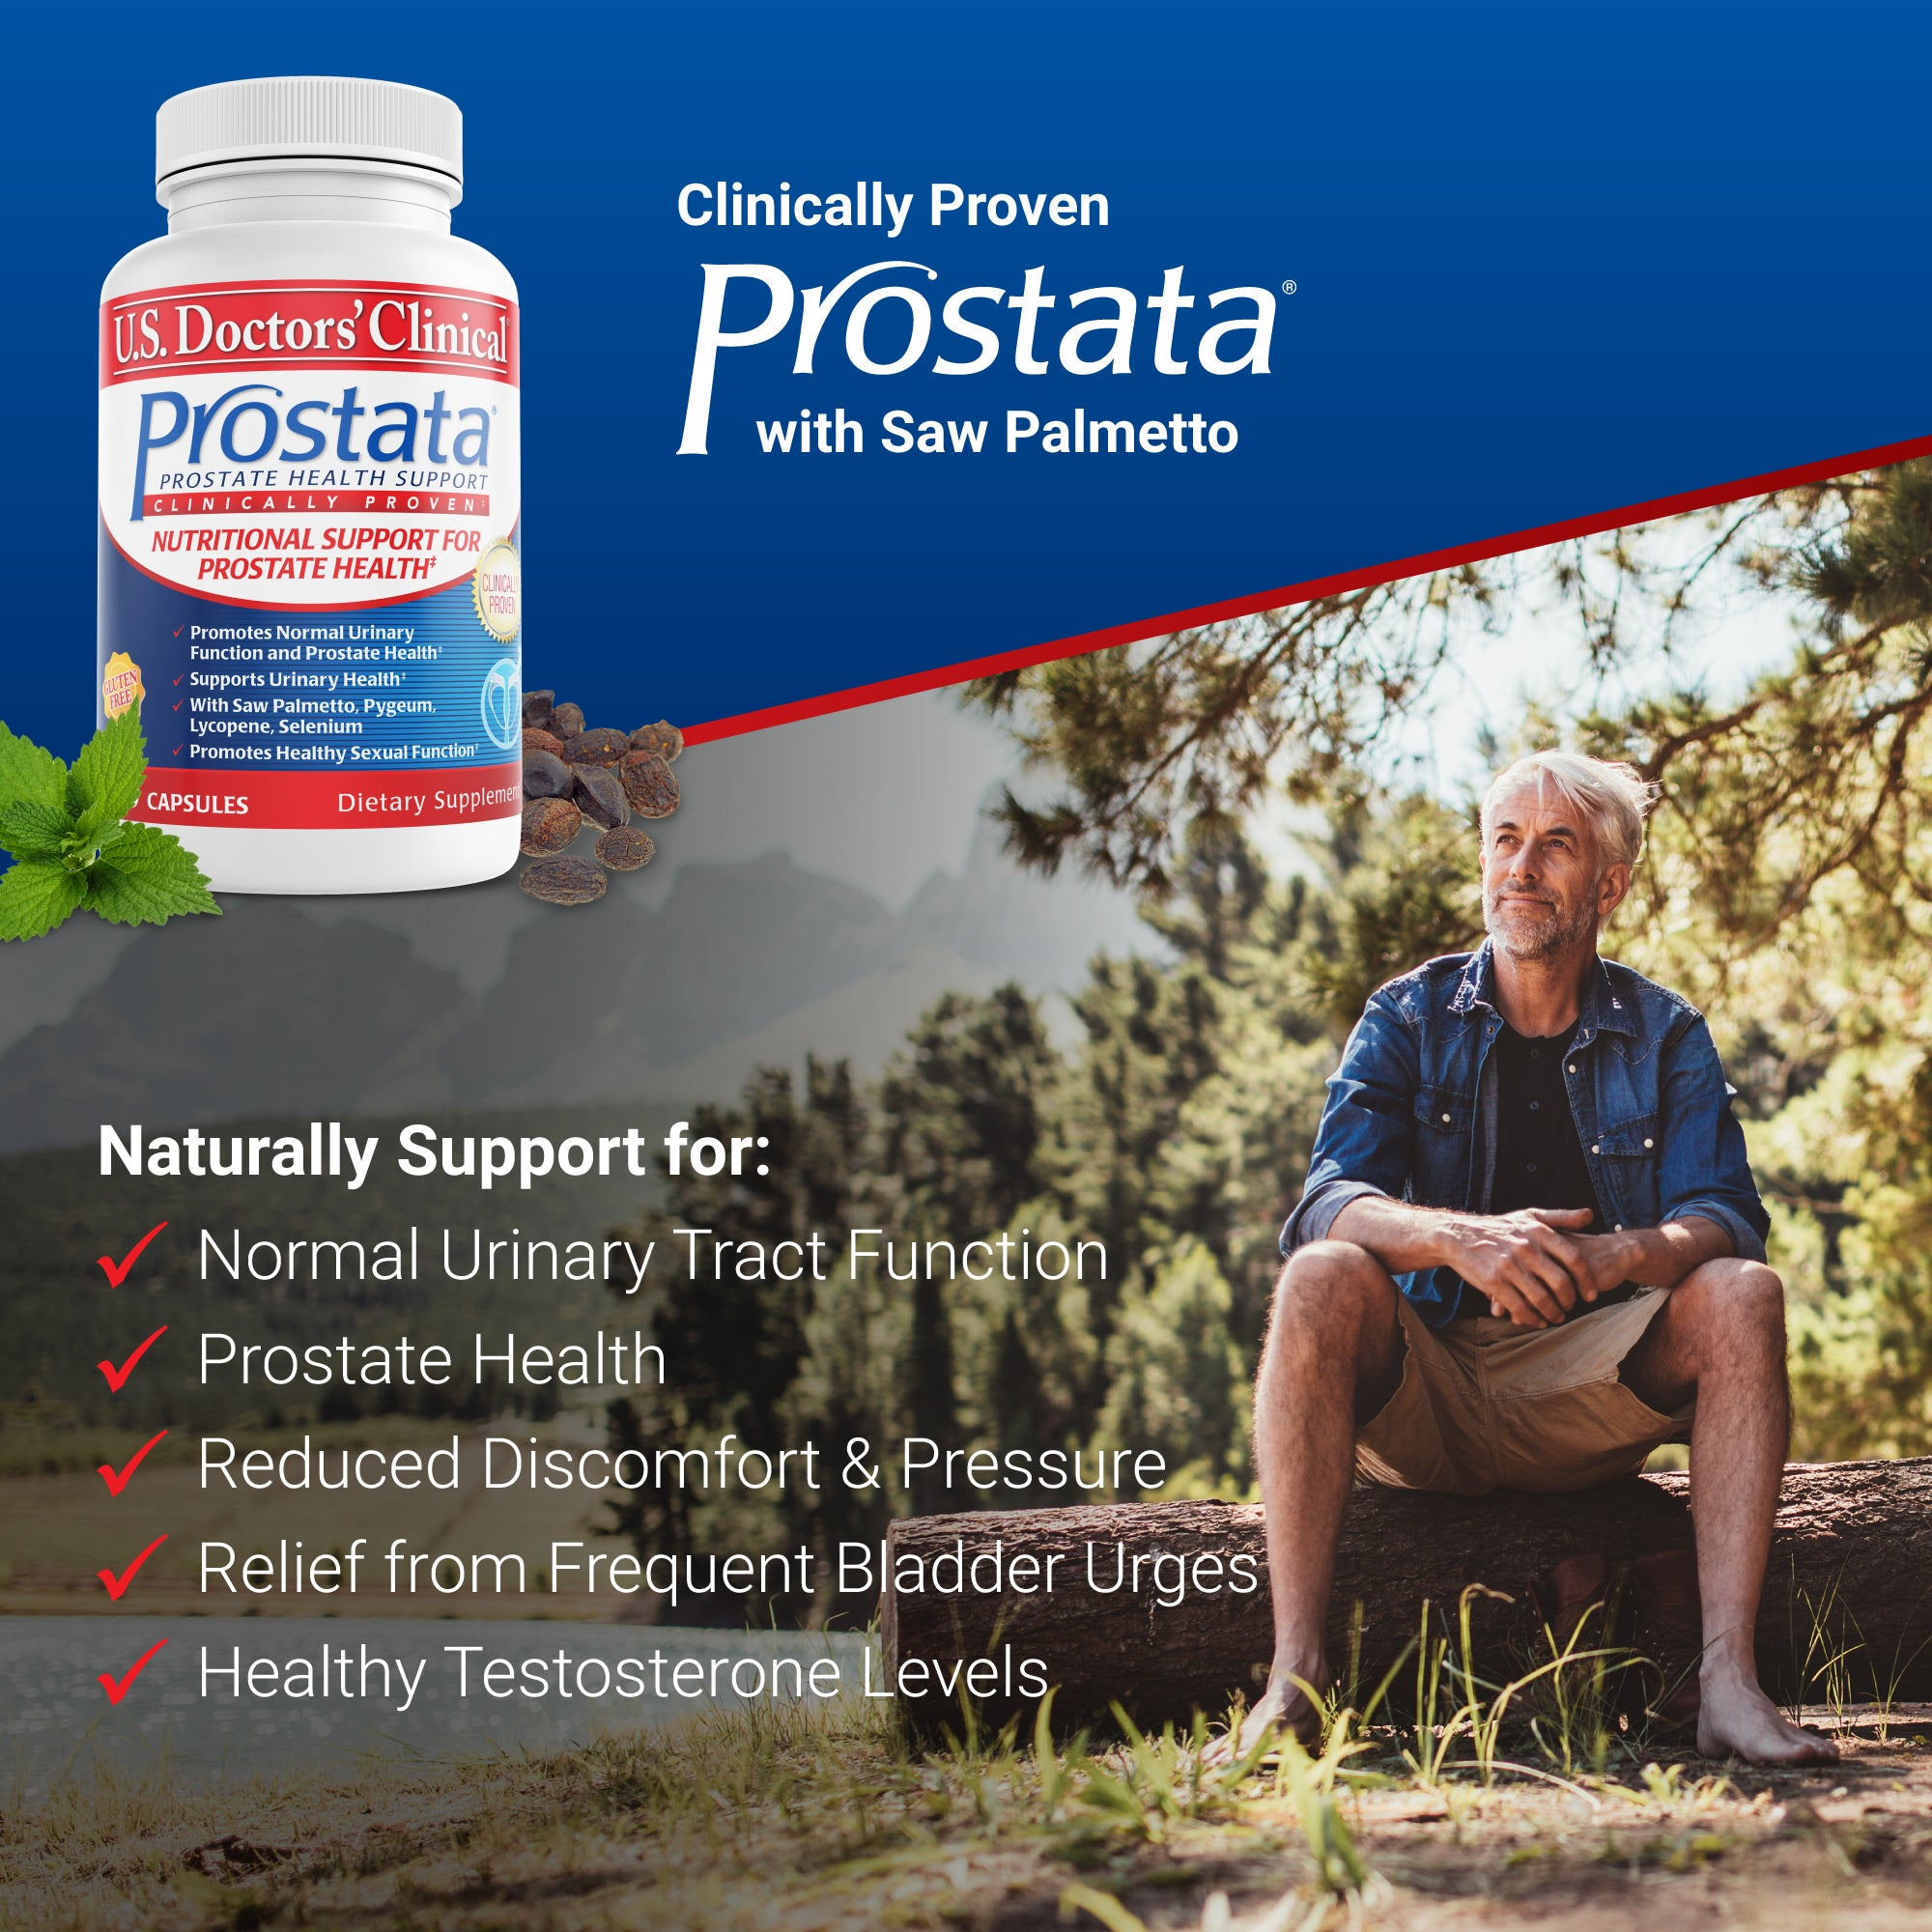 Prostata - Clinical Prostate Support